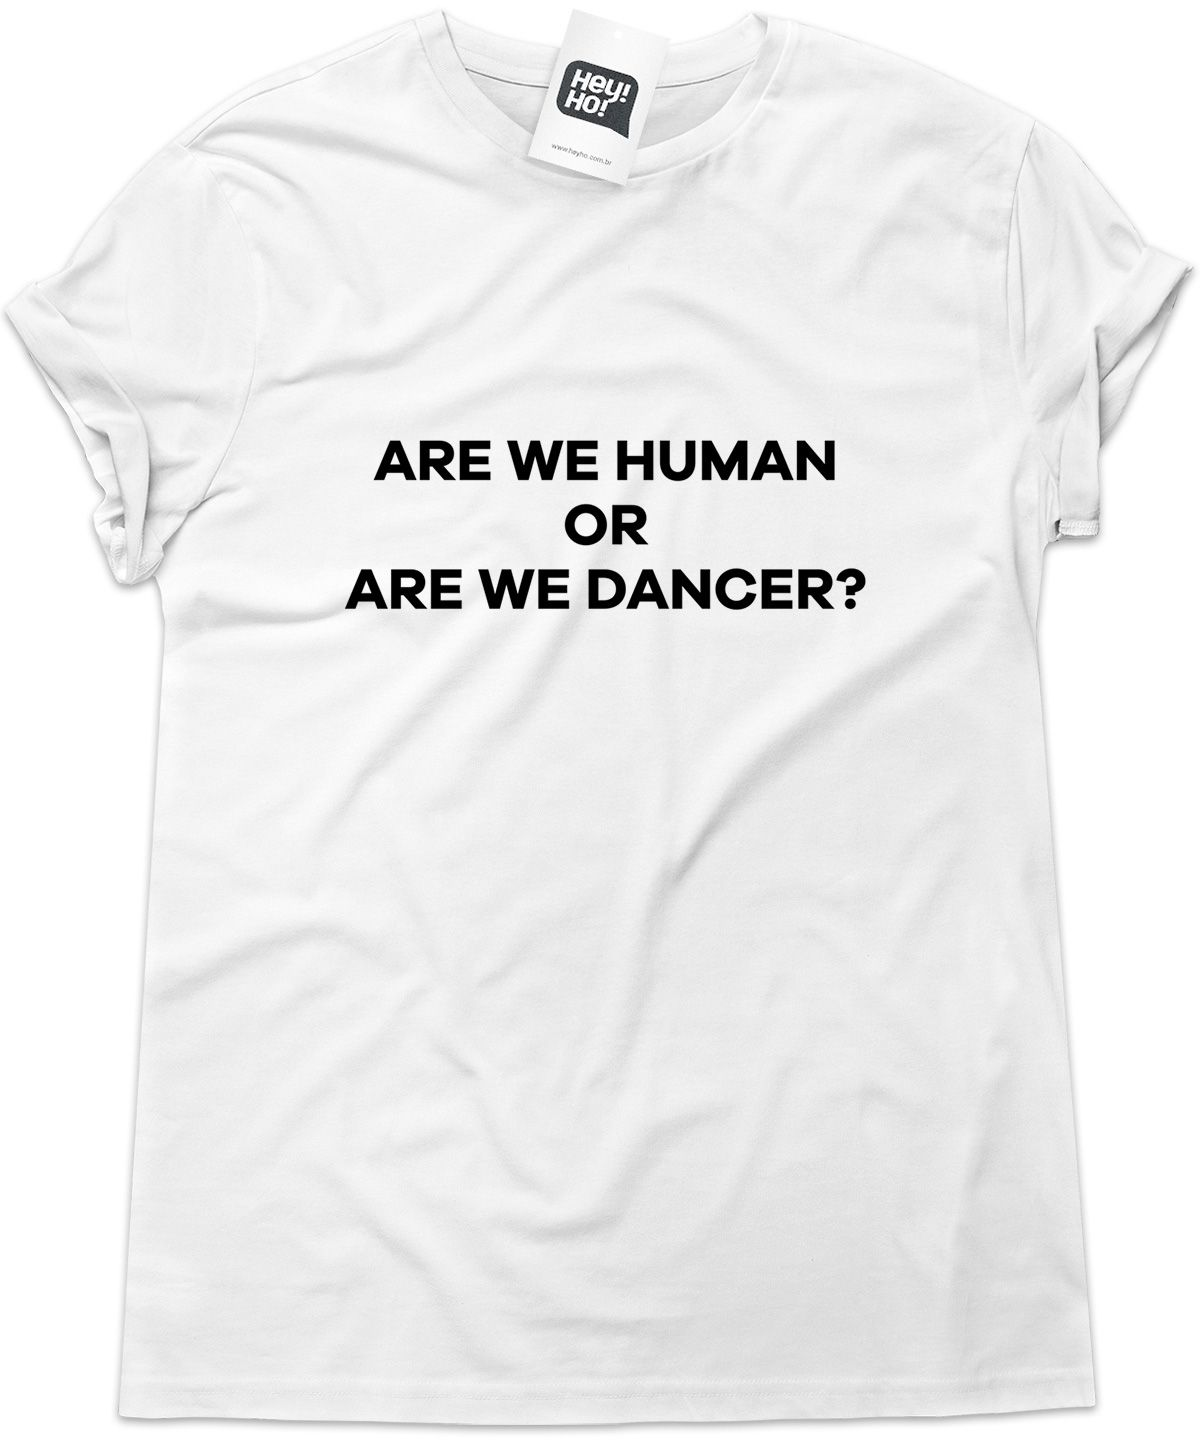 THE KILLERS - Are we human or are we dancer